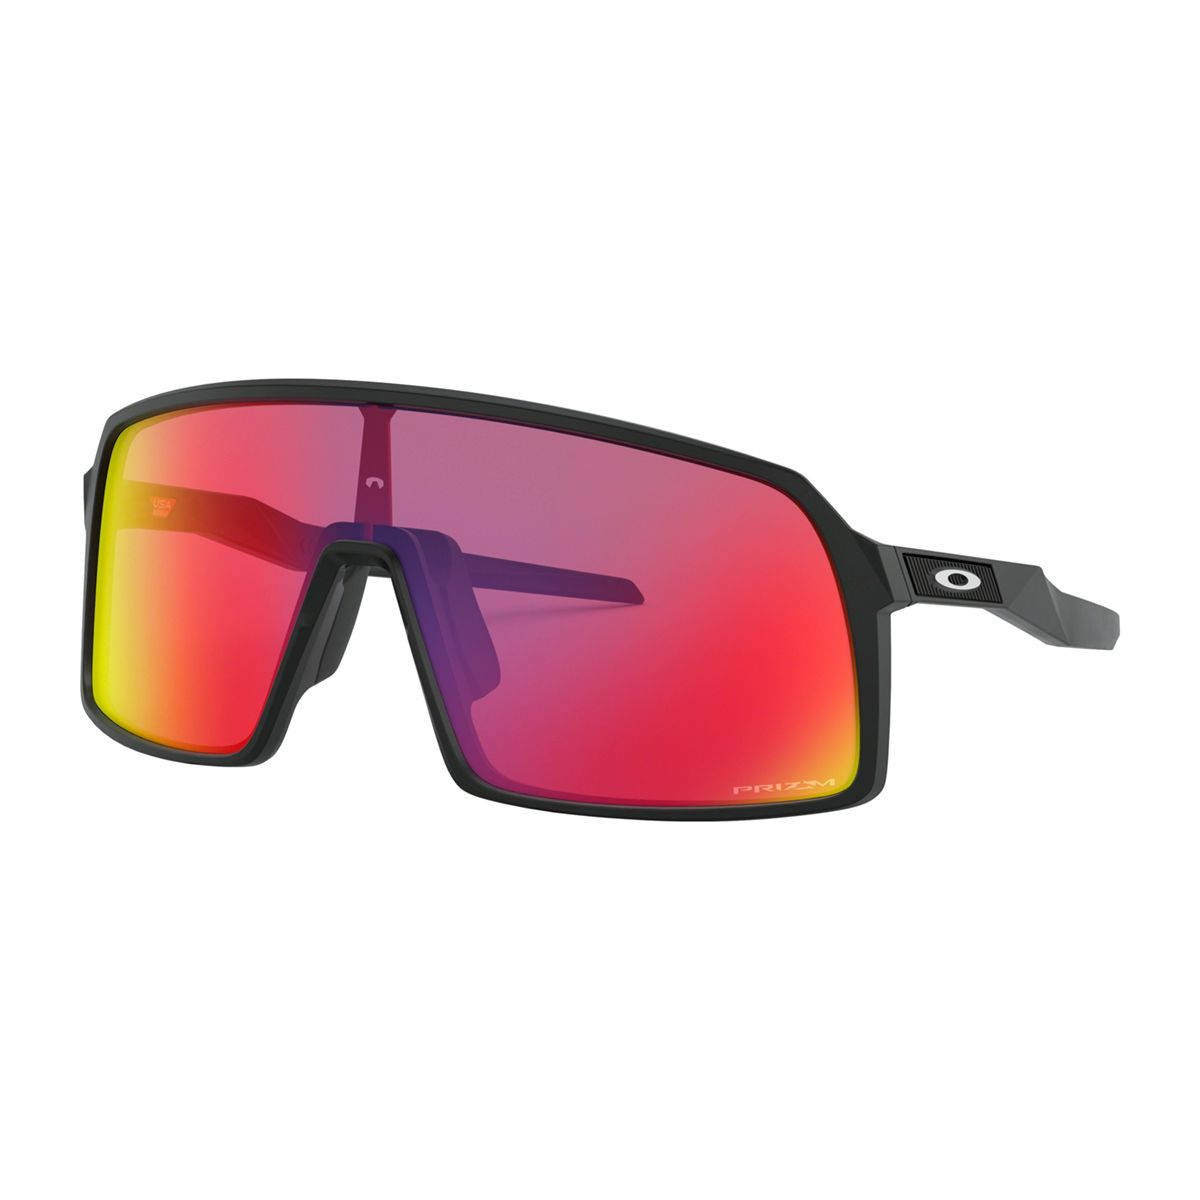 SUTRO Sunglasses